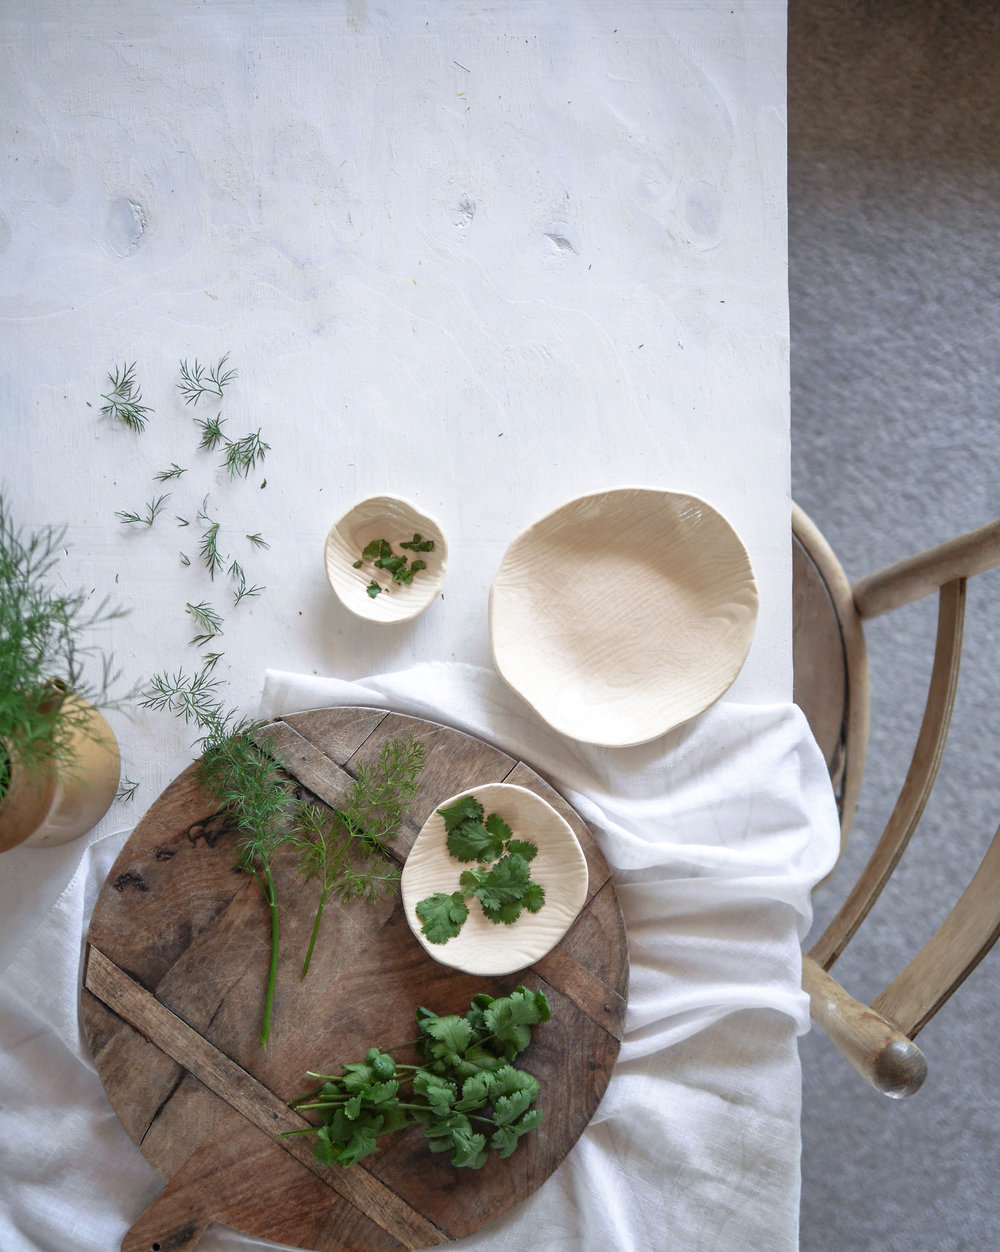 A simple tablescape featuring bespoke handmade ceramic dishes by  @mudbird_ceramics , shows just how Wabi-Sabi can be embraced through asymmetry and natural textures. Styling by  @underthekowhai